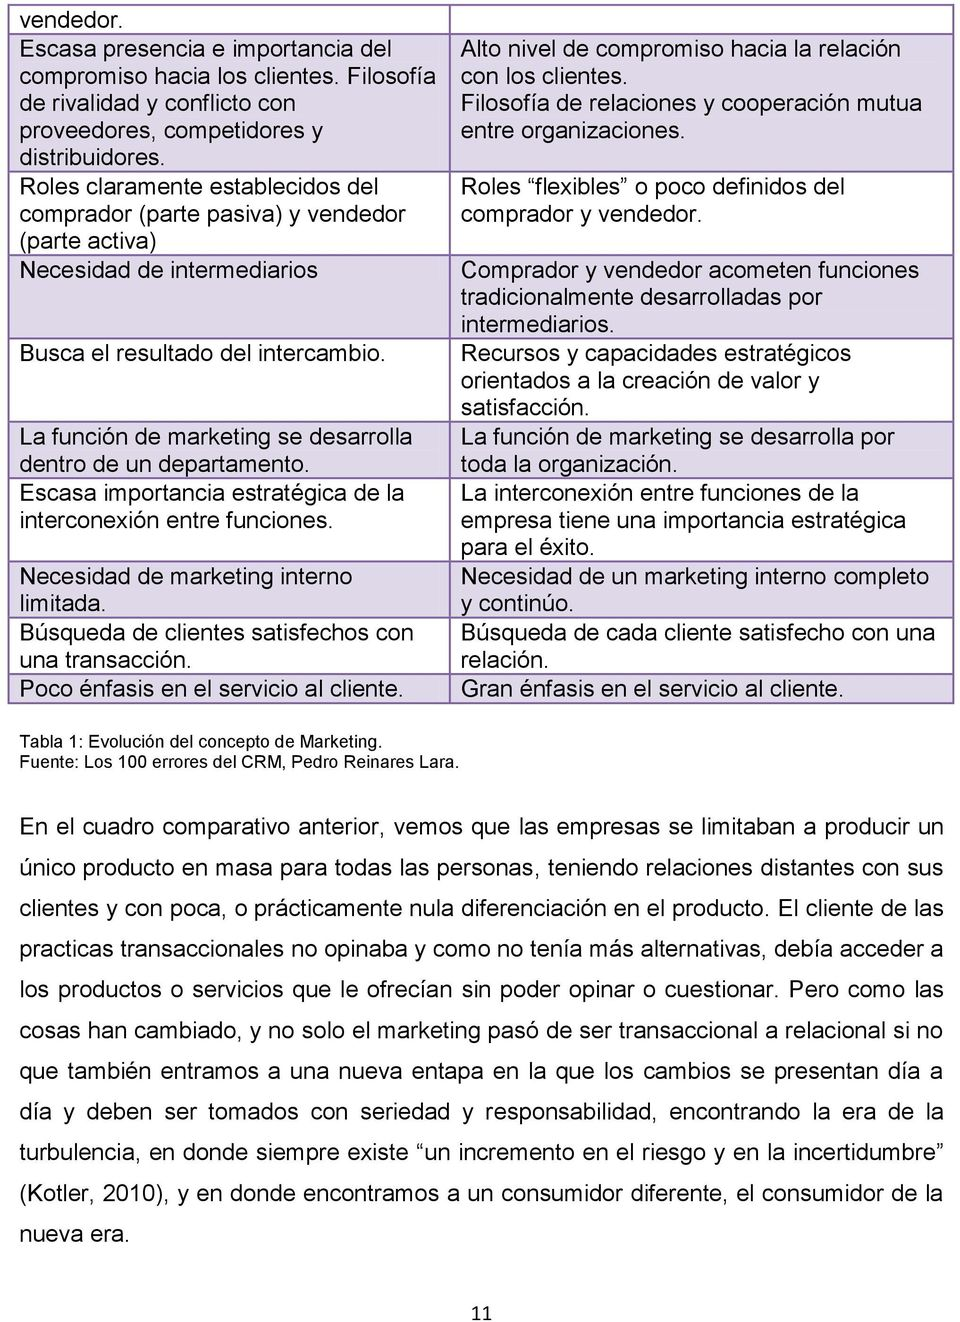 La función de marketing se desarrolla dentro de un departamento. Escasa importancia estratégica de la interconexión entre funciones. Necesidad de marketing interno limitada.